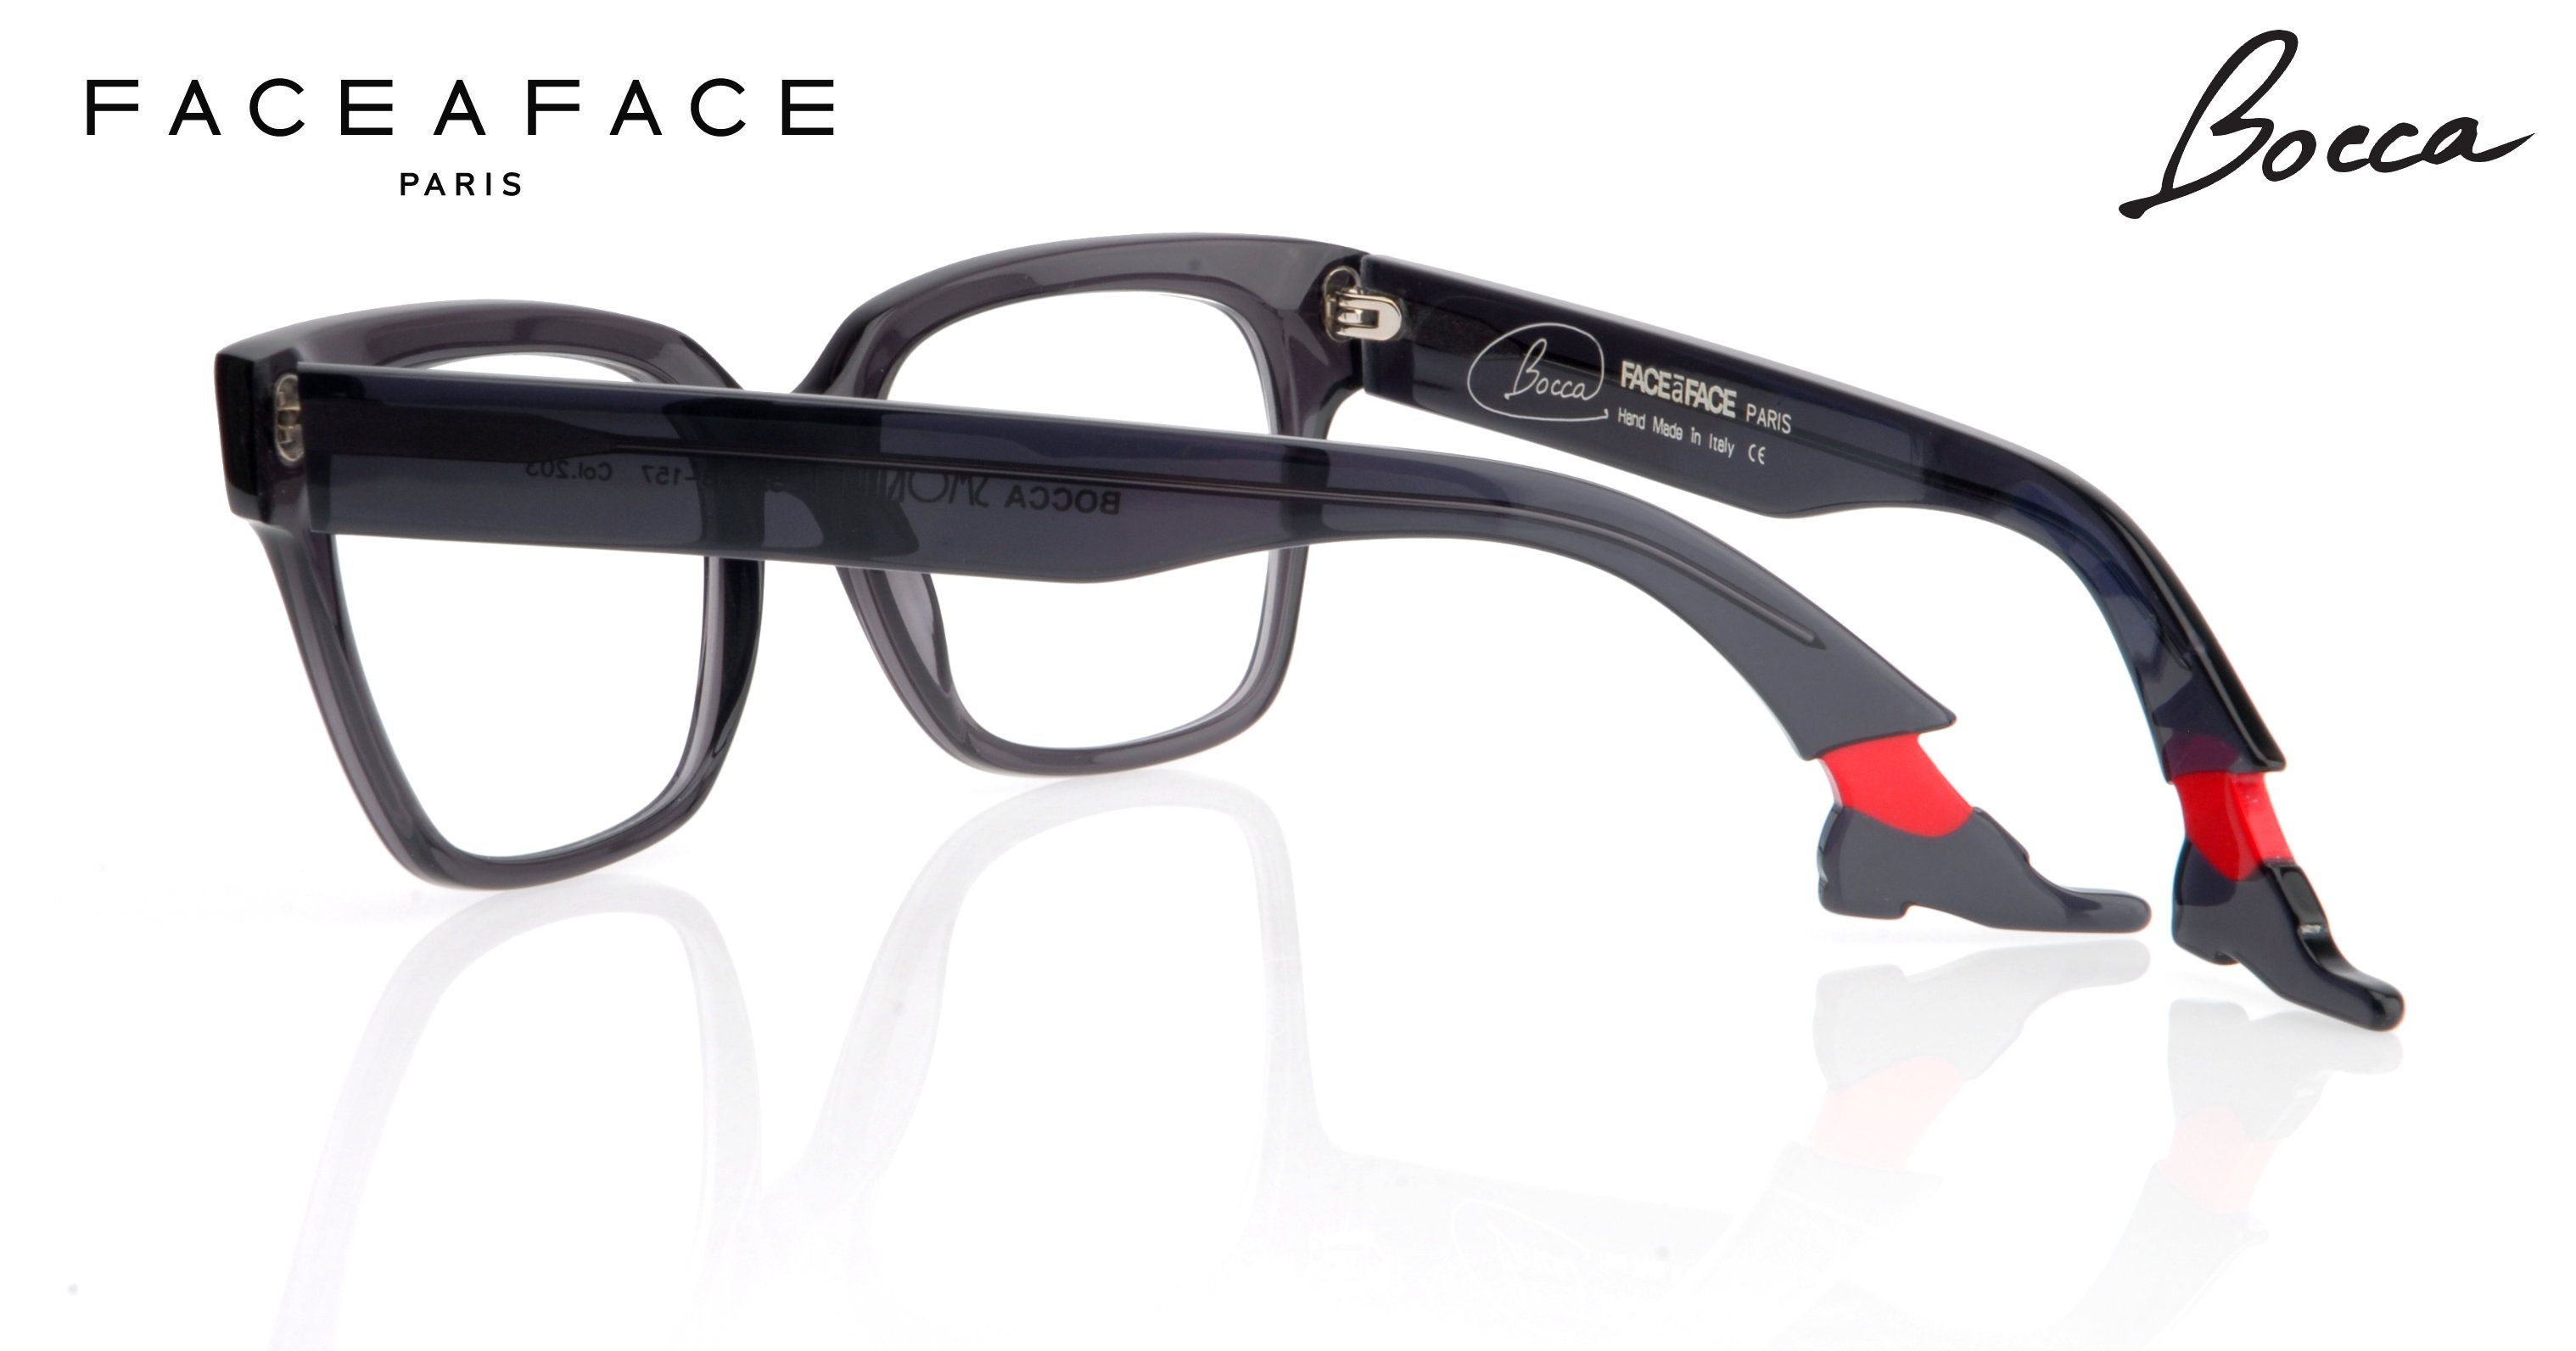 Wear face collection - Face A Face Employs 12 French Craftsmen To Handcraft The Collection You Feel The Commitment To Quality Each Time Your Wear Face A Face Eyewear